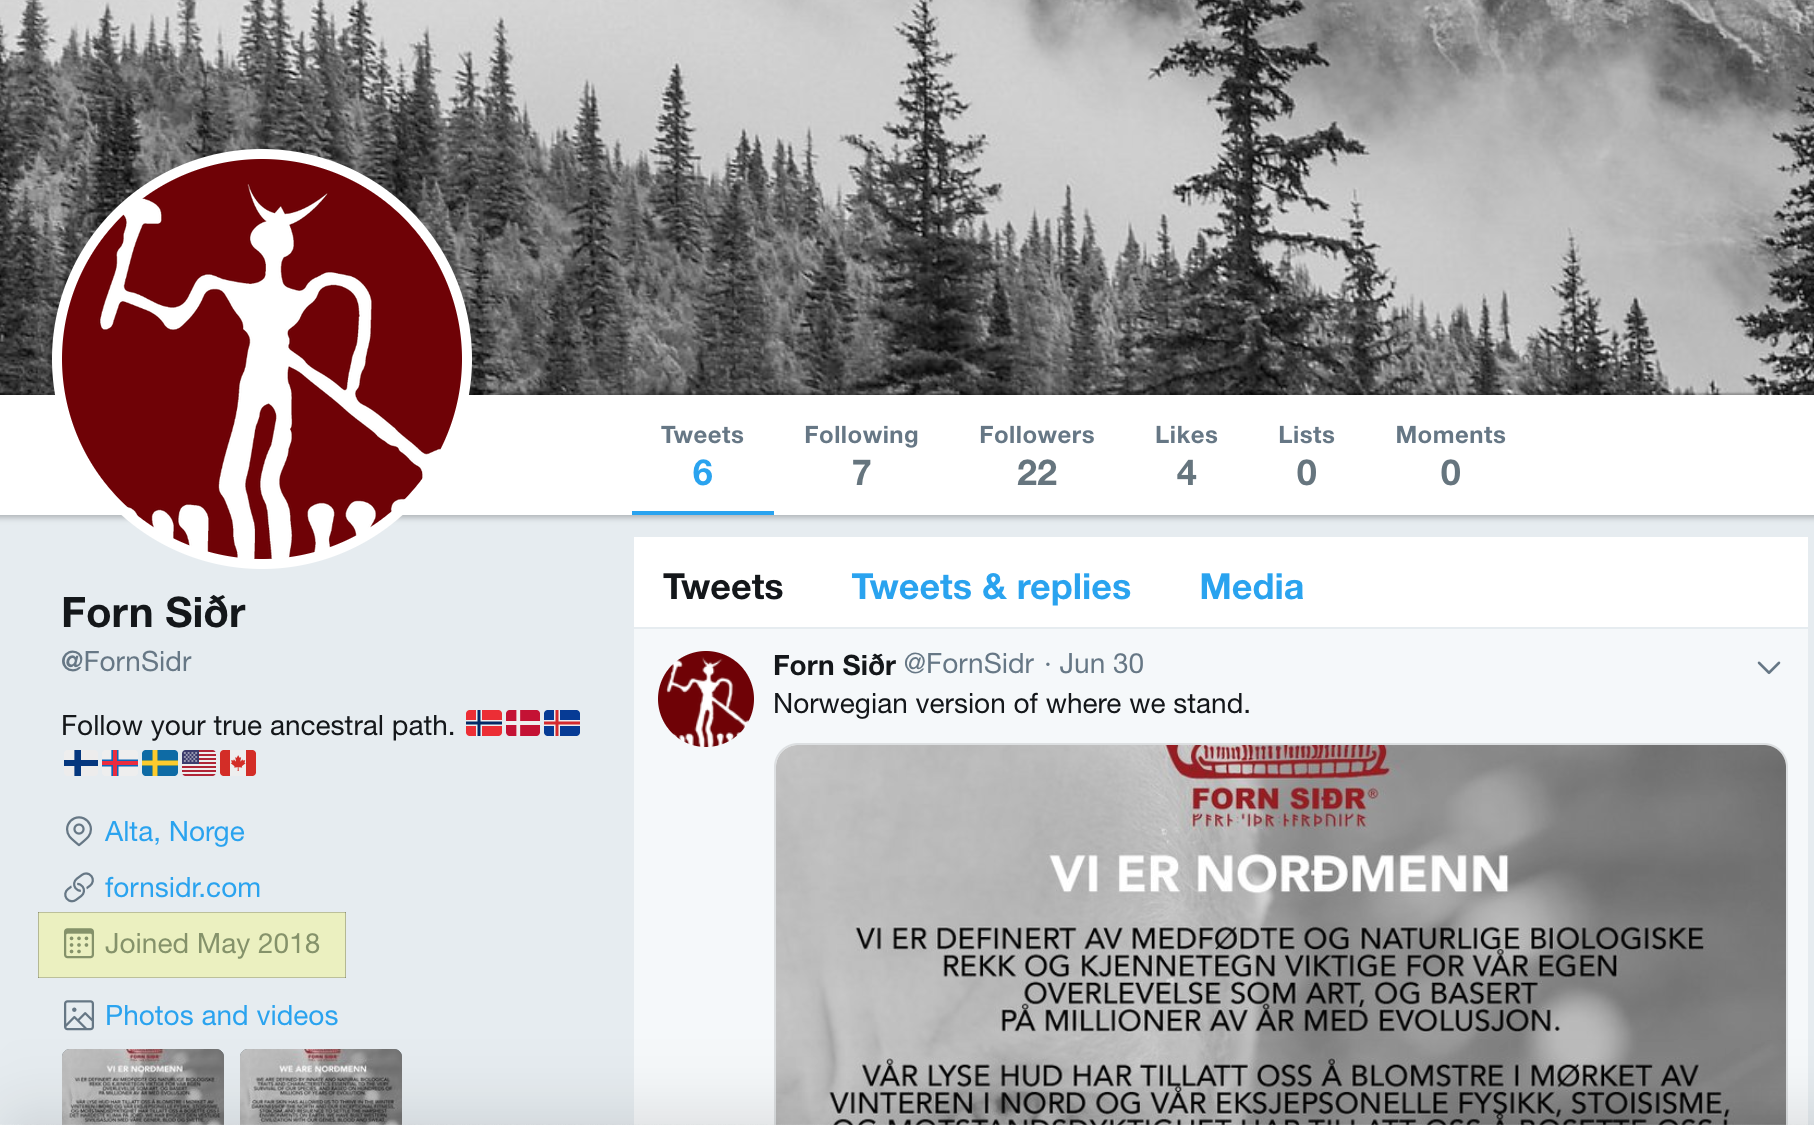 Twitter account created in May 2018.